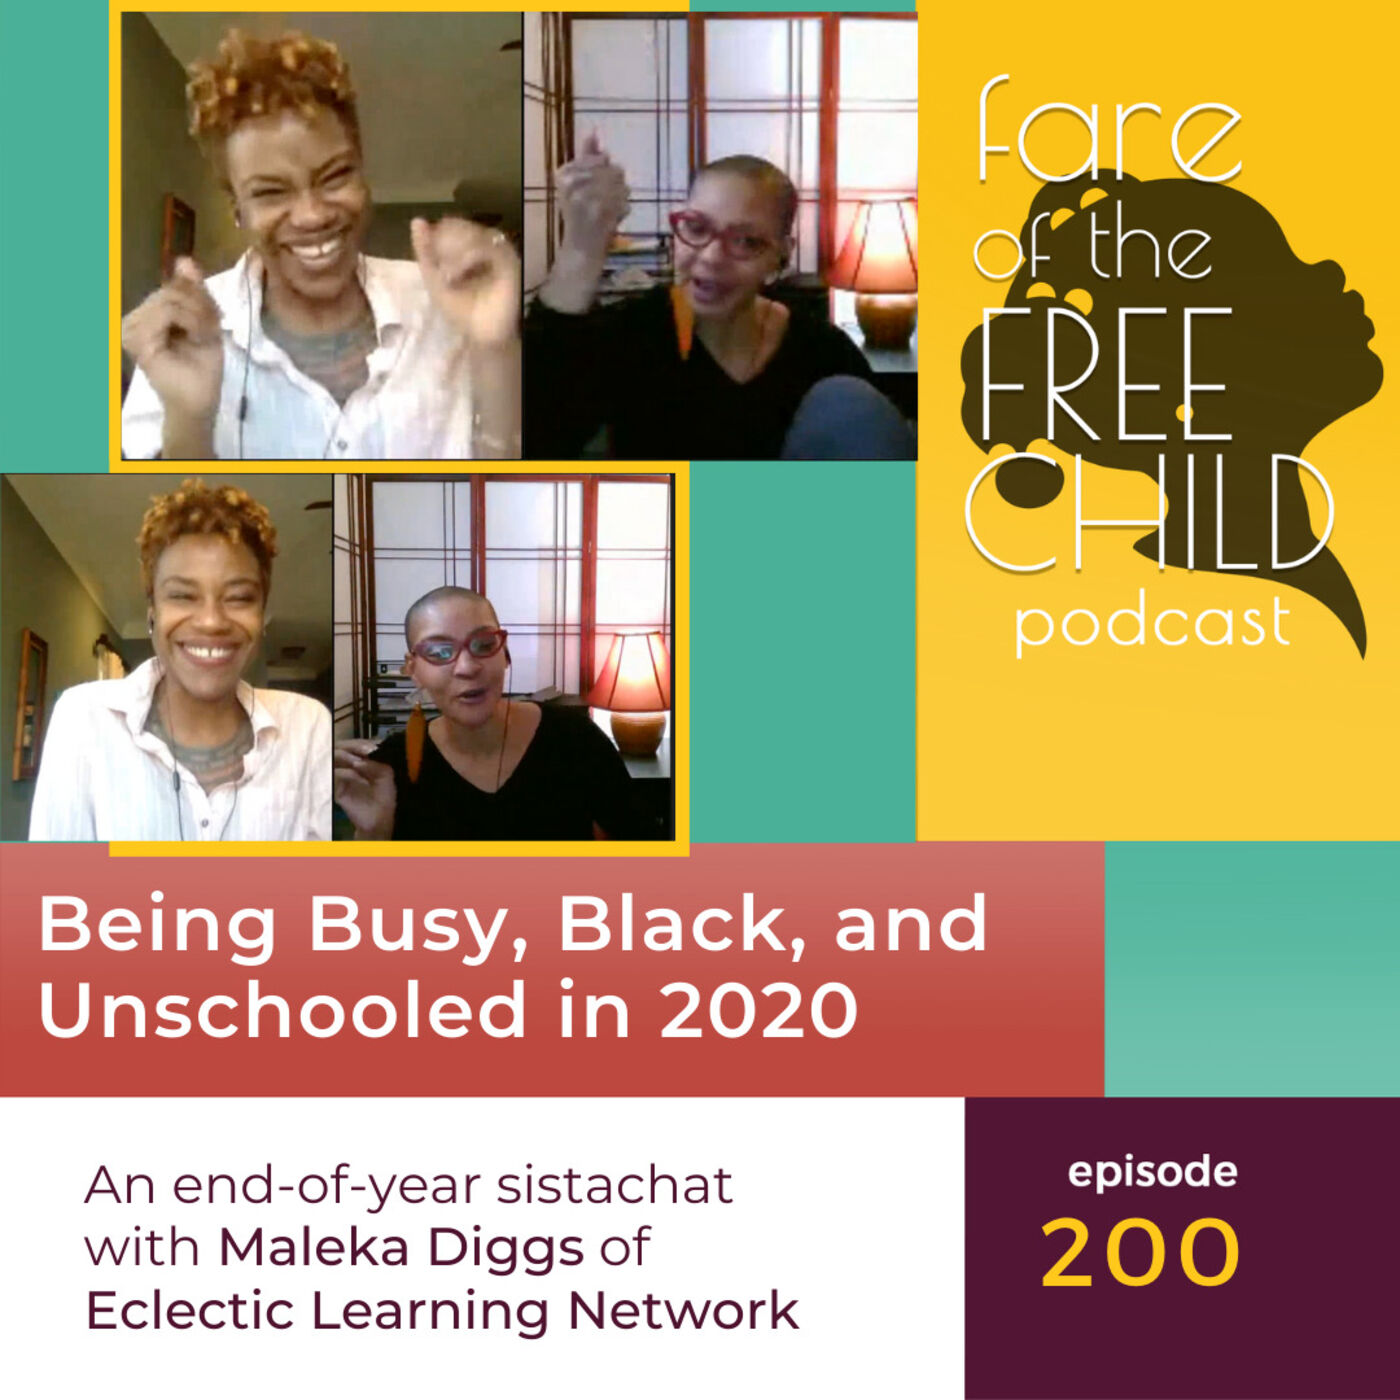 Ep 200: Being Busy, Black, and Unschooled in 2020 An end-of-year sistachat with Maleka Diggs of Eclectic Learning Network